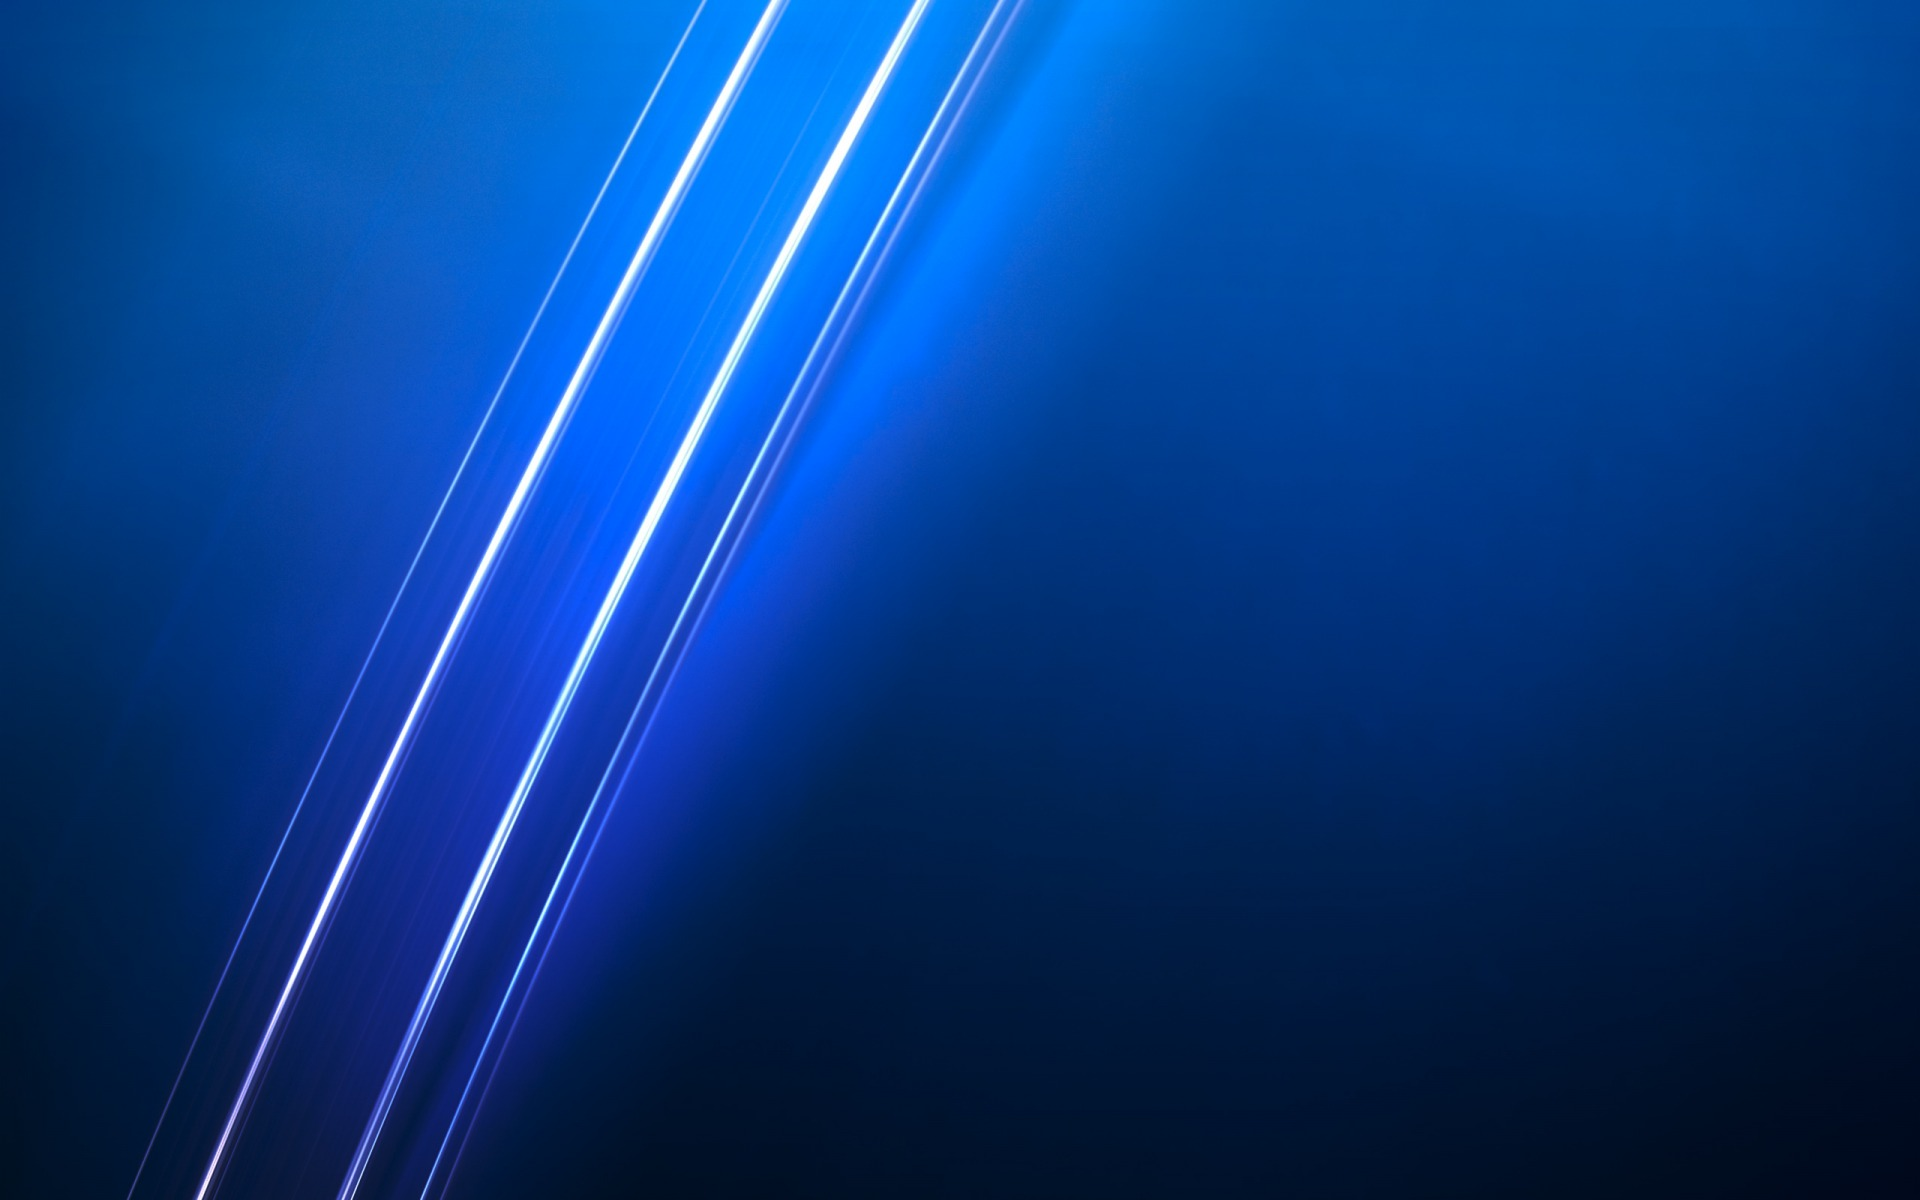 Dashing Blue Wallpaper Abstract Other Wallpapers in jpg format for